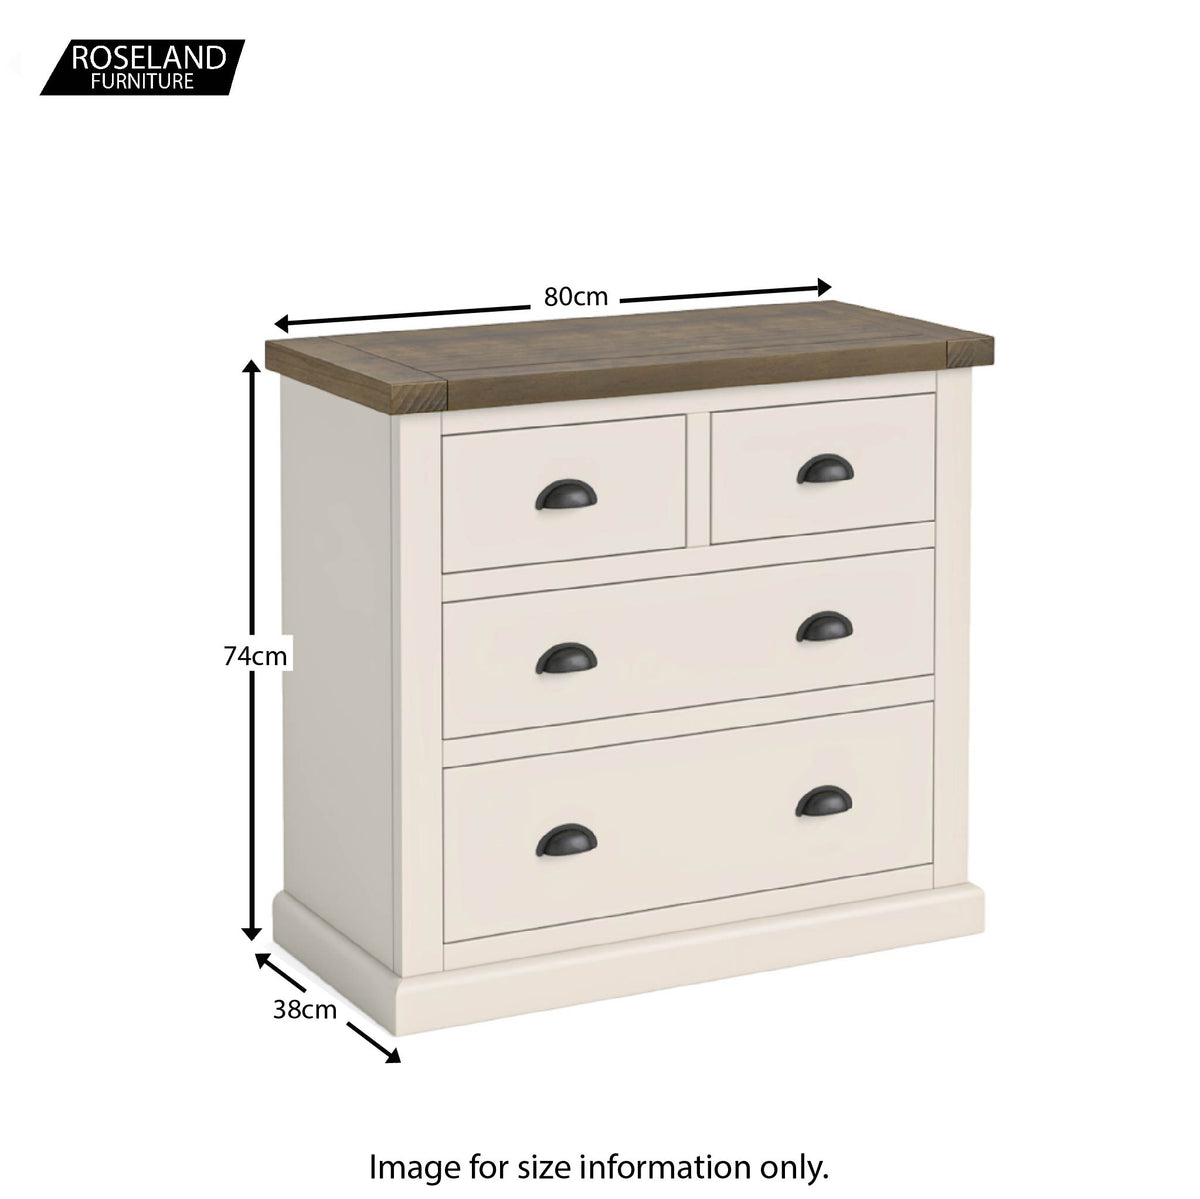 Dimensions - Hove Ivory 2 Over 2 Chest of Drawers